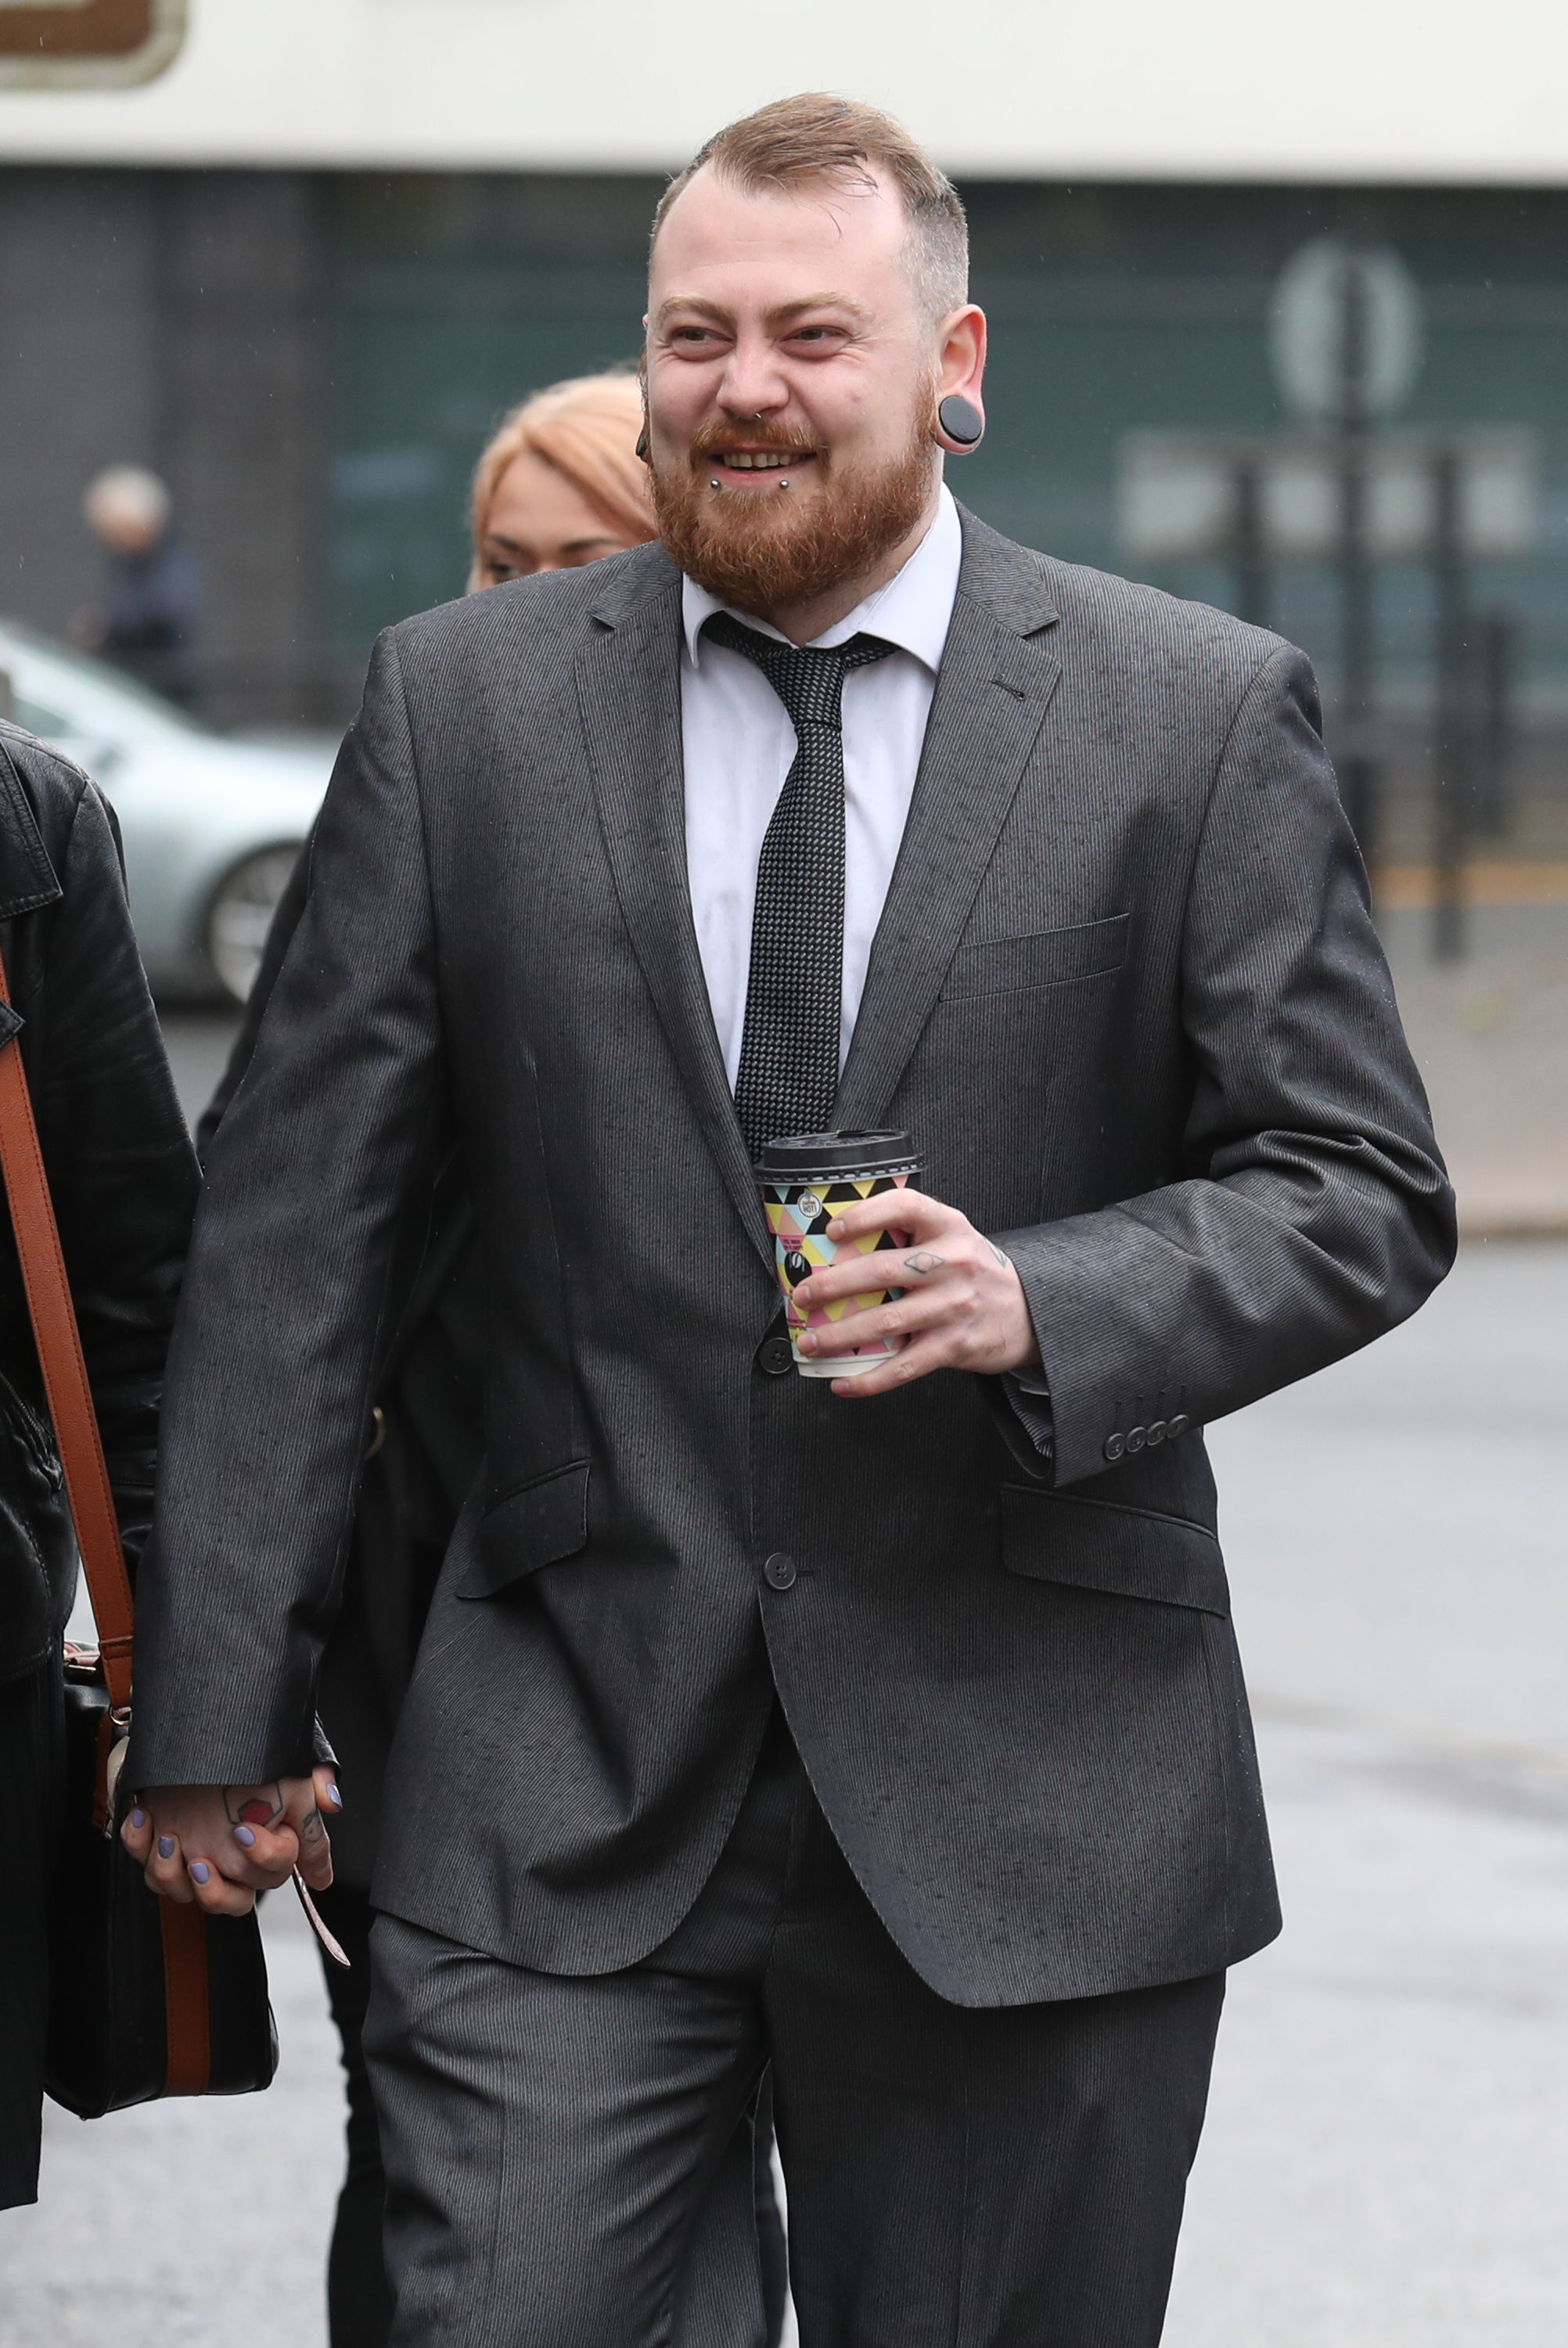 Mark Meechan arrives at Airdrie Sheriff Court for sentencing after he was found guilty of an offence under the Communications Act for posting a YouTube video of a dog giving Nazi salutes. PRESS ASSOCIATION Photo. Picture date: Monday April